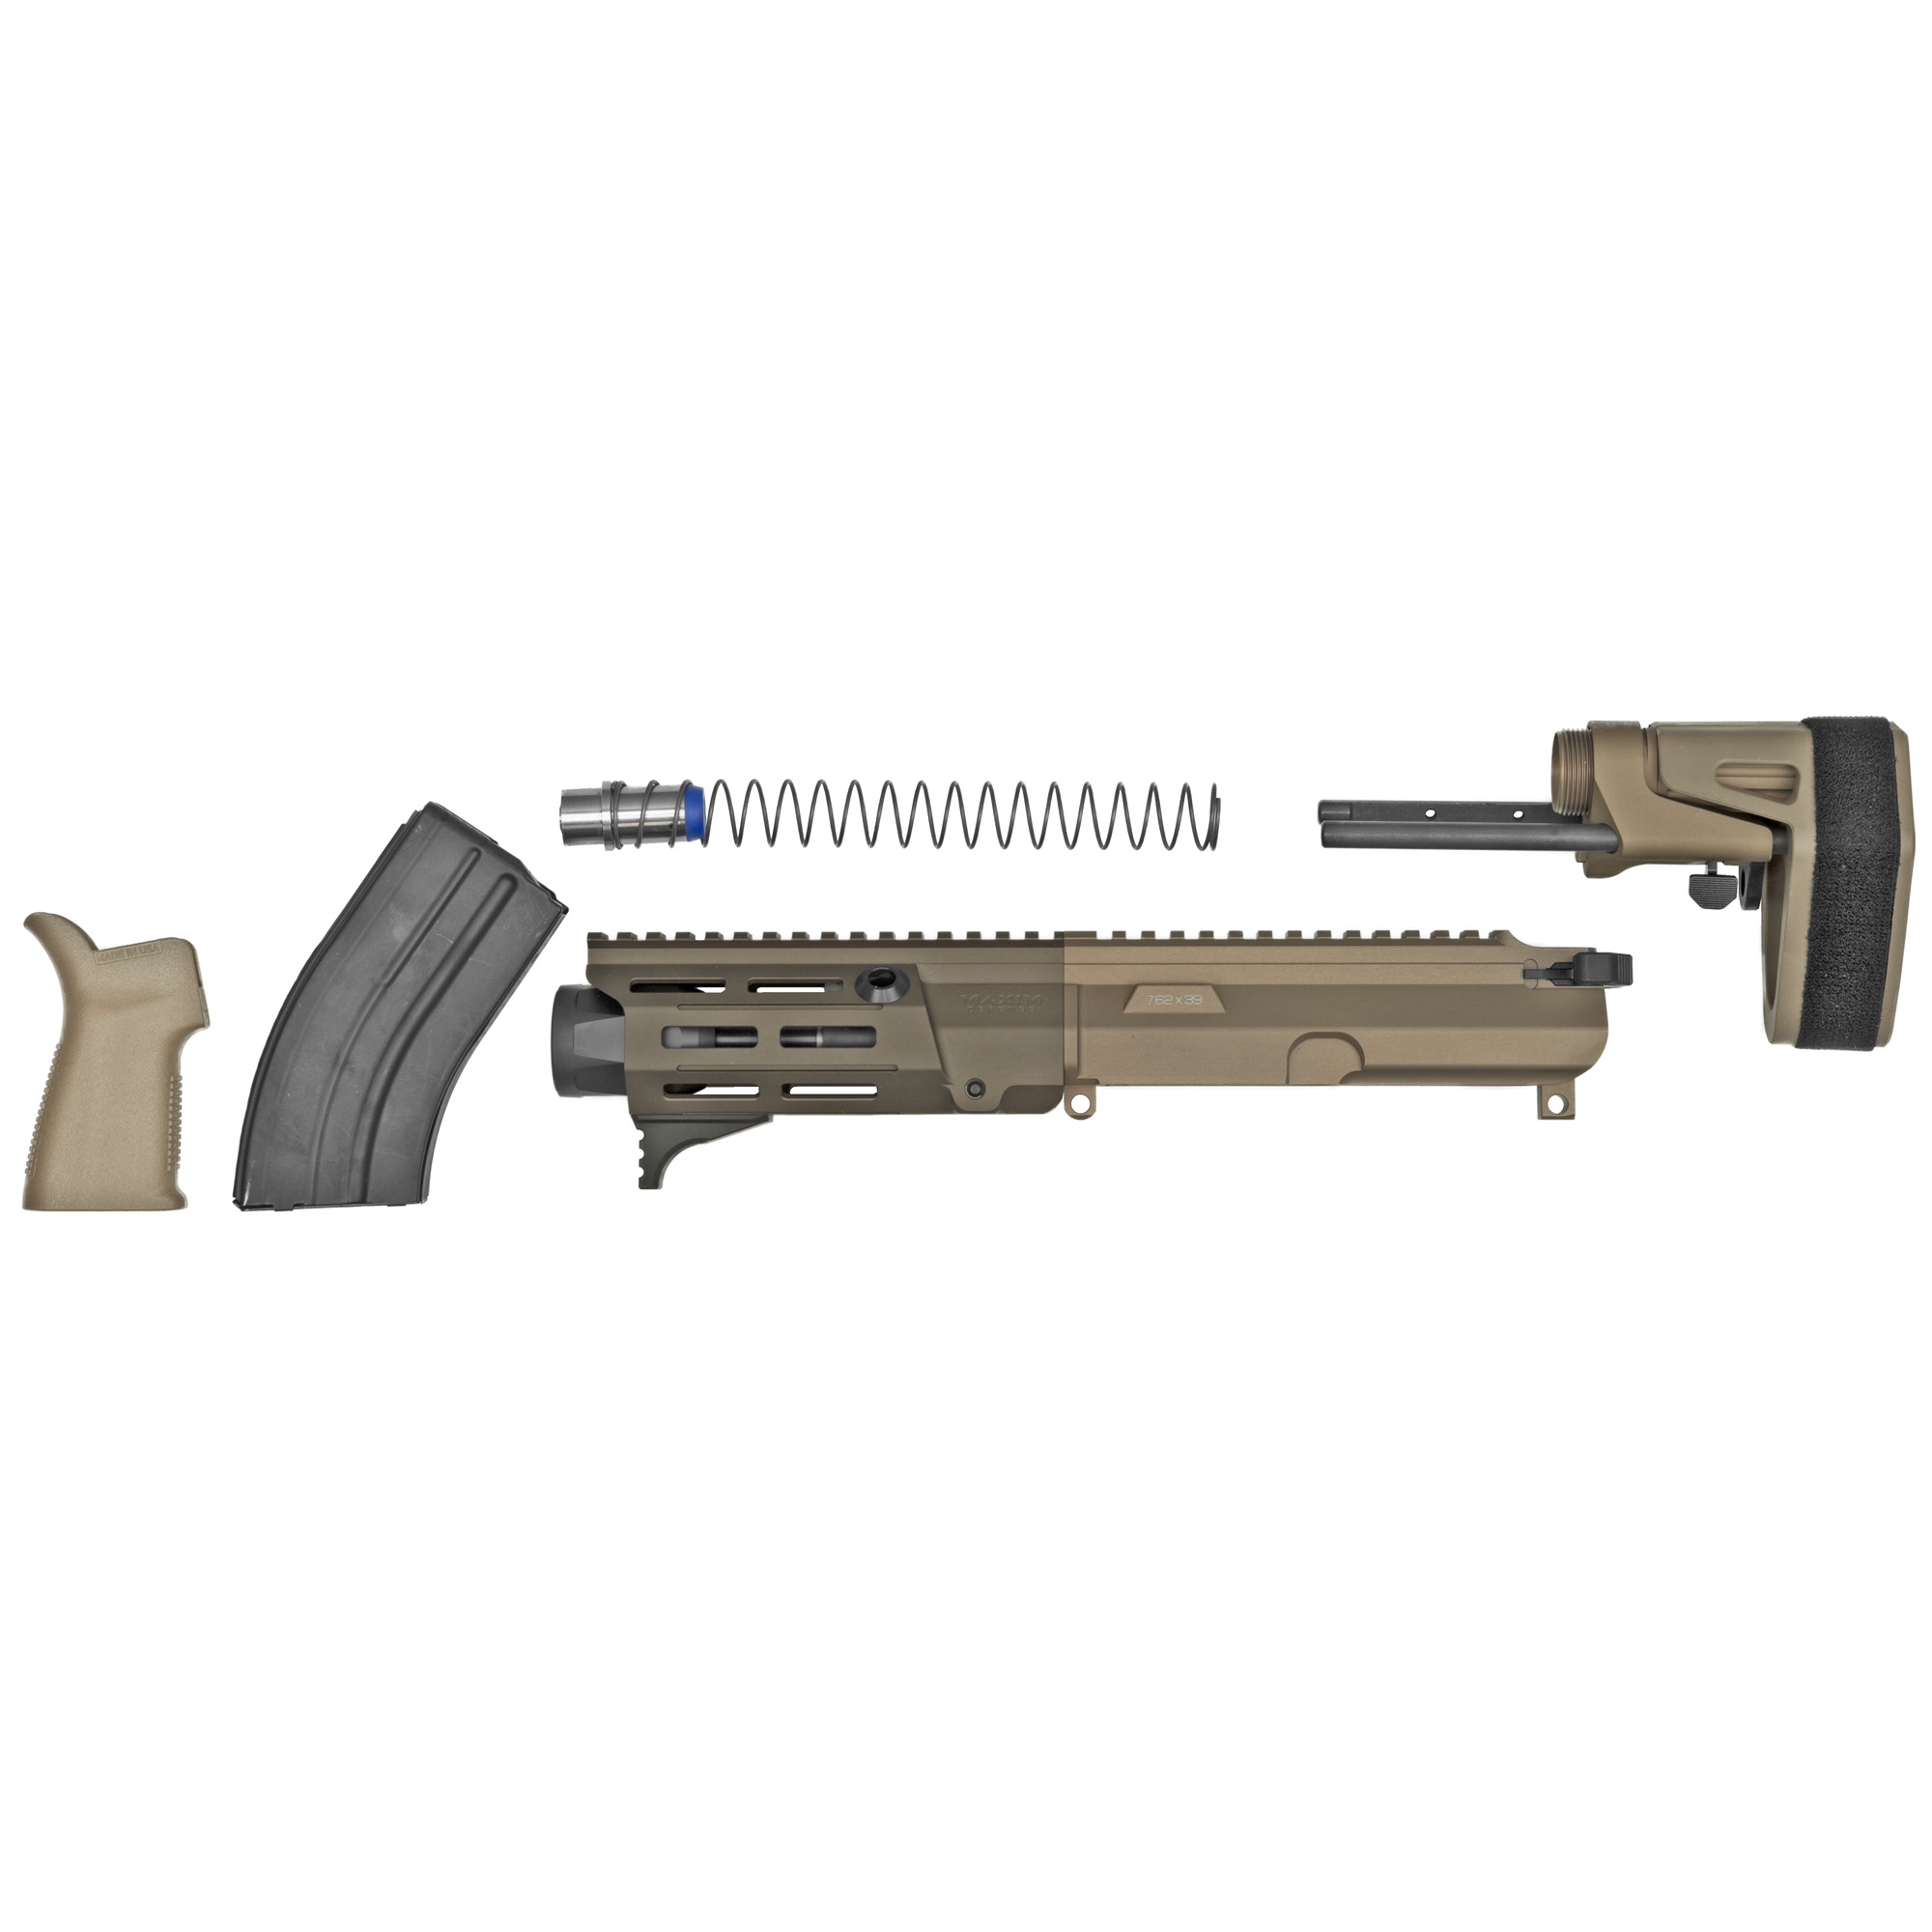 """Born from the SOCOM PDW solicitation"""" the NEW Maxim Defense PDX(TM) U.R.G. is designed to handle the fierce demands of the Tier 1 community. The PDX(TM) U.R.G. dominates in close quarter encounters and achieves maximum energy on target without sacrificing accuracy at distance. At just 14"""" in overall length"""" the PDX(TM) U.R.G. is the ultimate choice for when concealment and personal defense is non-negotiable. At the heart of the PDX(TM) KIT is the newly developed Maxim SCW(TM) stock system. This patent-pending design cuts down the length of the stock to 4"""" and offers an integrated BCG with interchangeable buffer weights to give you the flexibility to maximize performance and versatility without sacrificing functionality or form. The PDX(TM) KIT is also equipped with newly invented Maxim HATEBRAKE(TM) Muzzle Booster. This patent-pending device significantly reduces recoil"""" decreases the flash signature"""" pushes gasses and concussion waves downrange away from the operator improving overall execution in short barrel pistols and rifles. The PDX Kit uses a Direct Impingement system. The PDX Kit comes with everything you need to turn your lower receiver into a Maxim Defense PDX"""